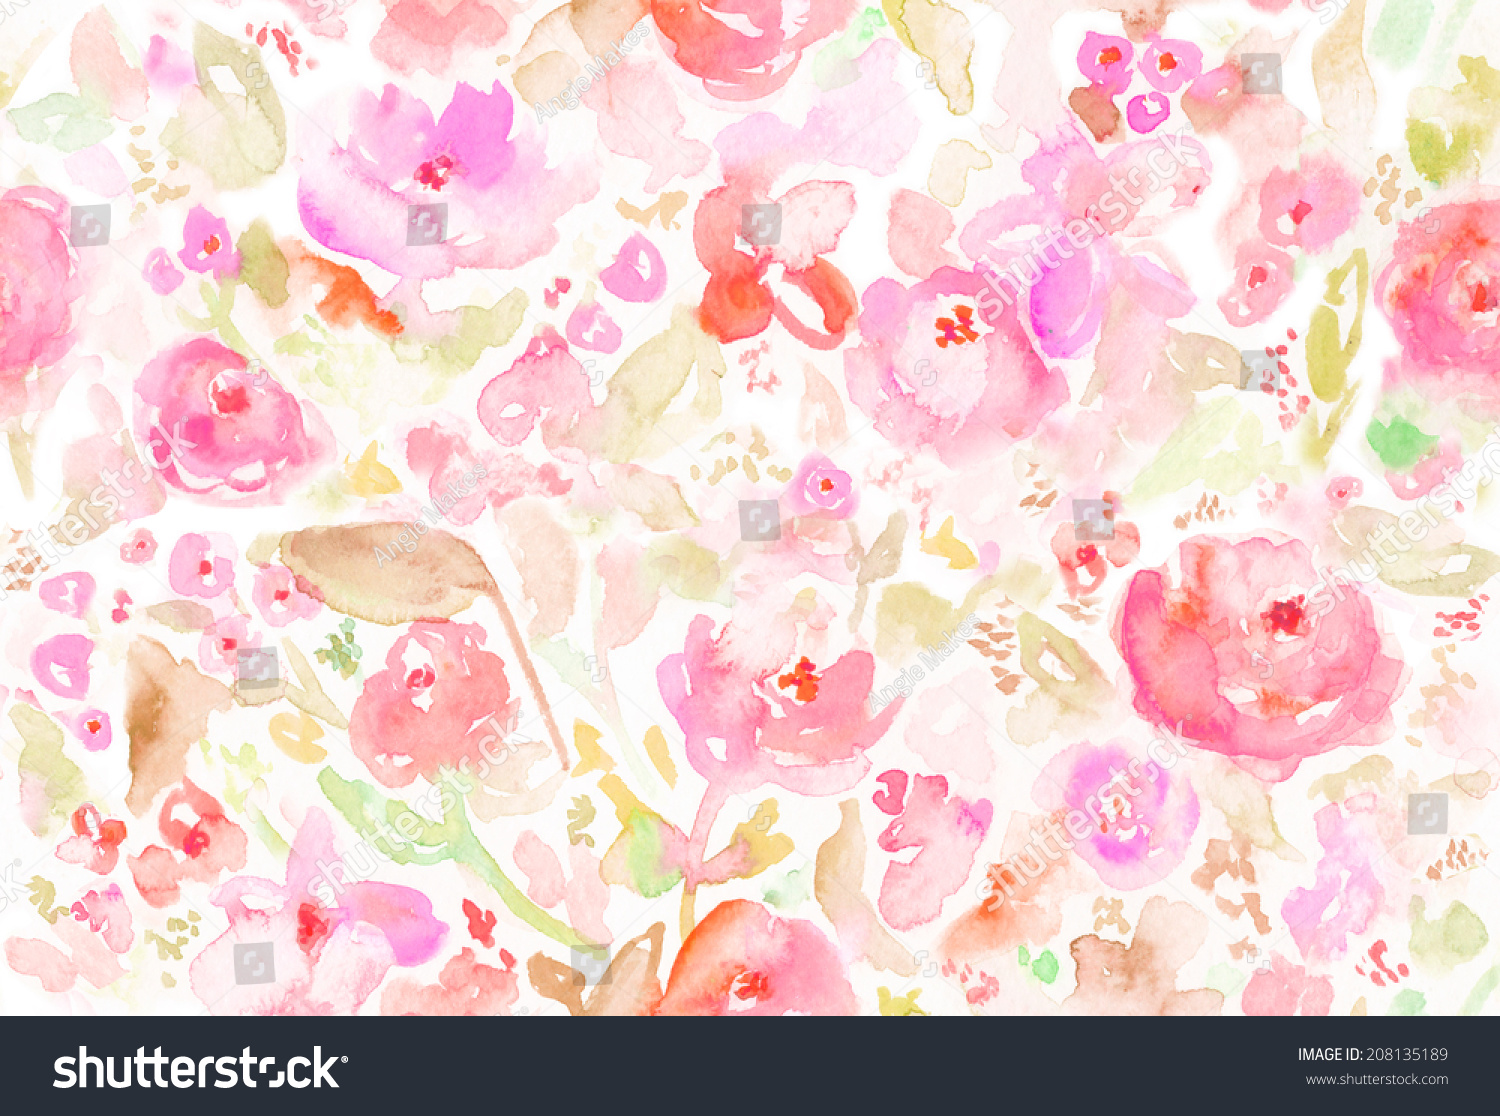 Seamless Abstract Modern Watercolor Floral Background Stock